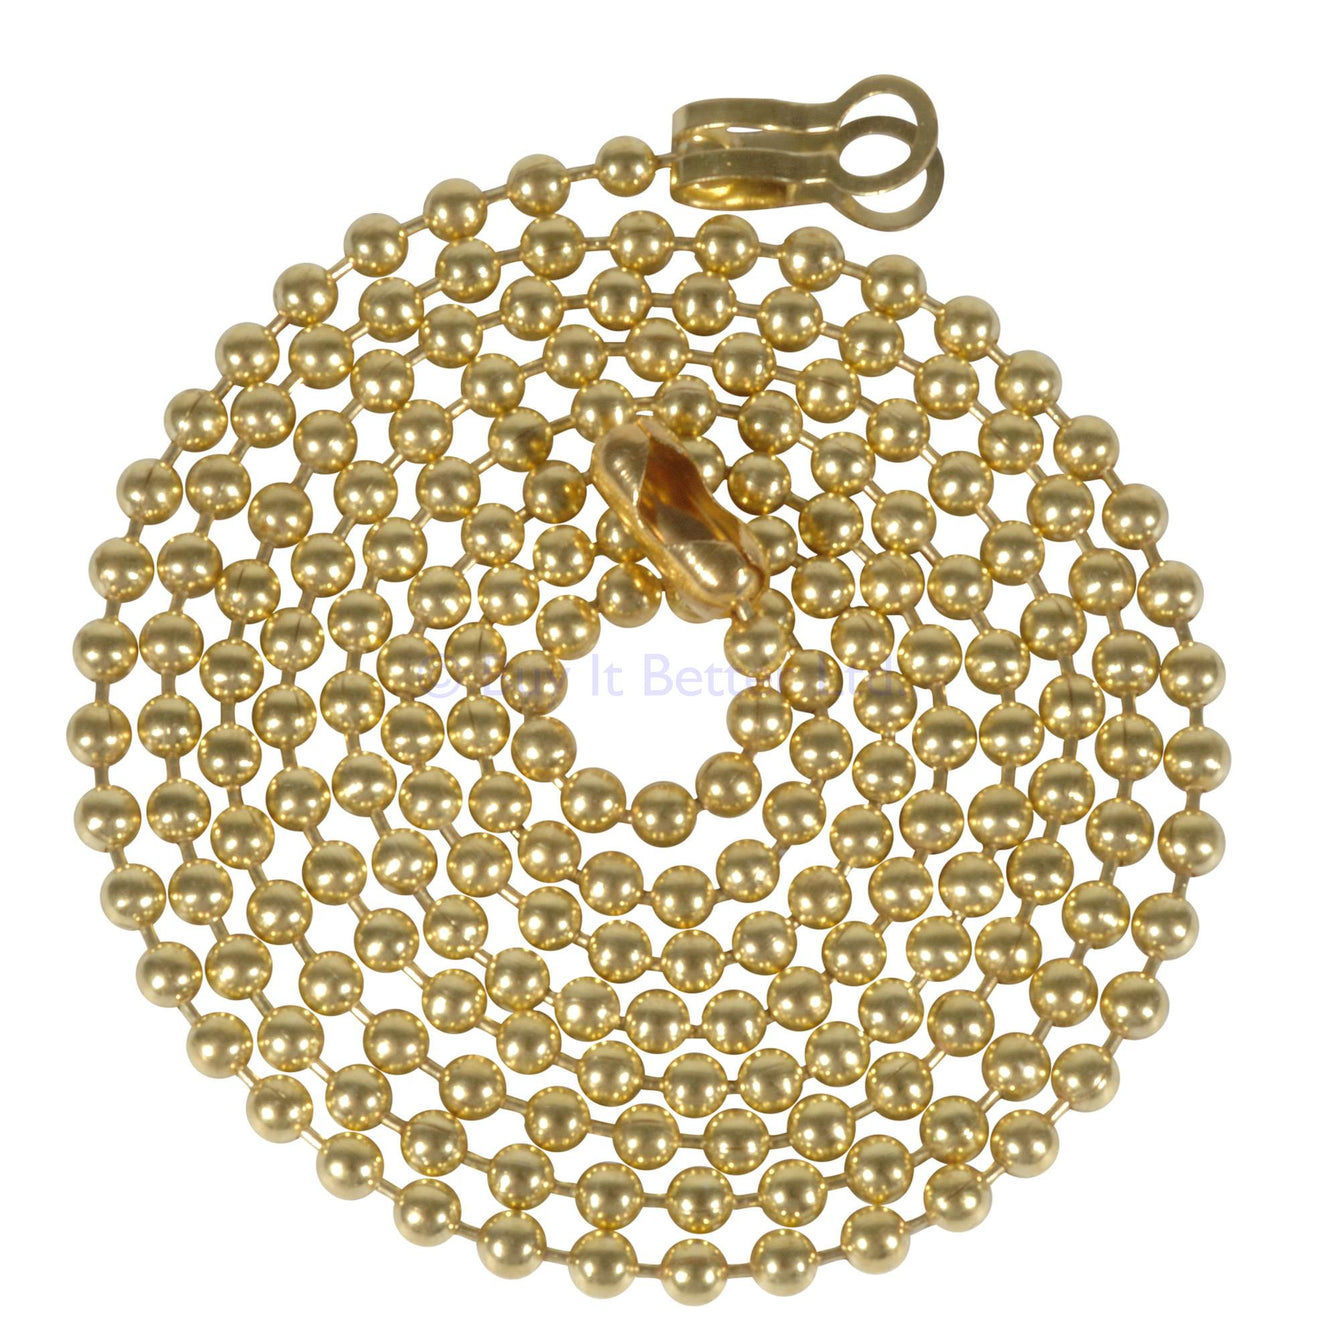 ElekTek Light Pull Chain Extension With Ball Chain Connector 800mm Long - Buy It Better Antique Brass